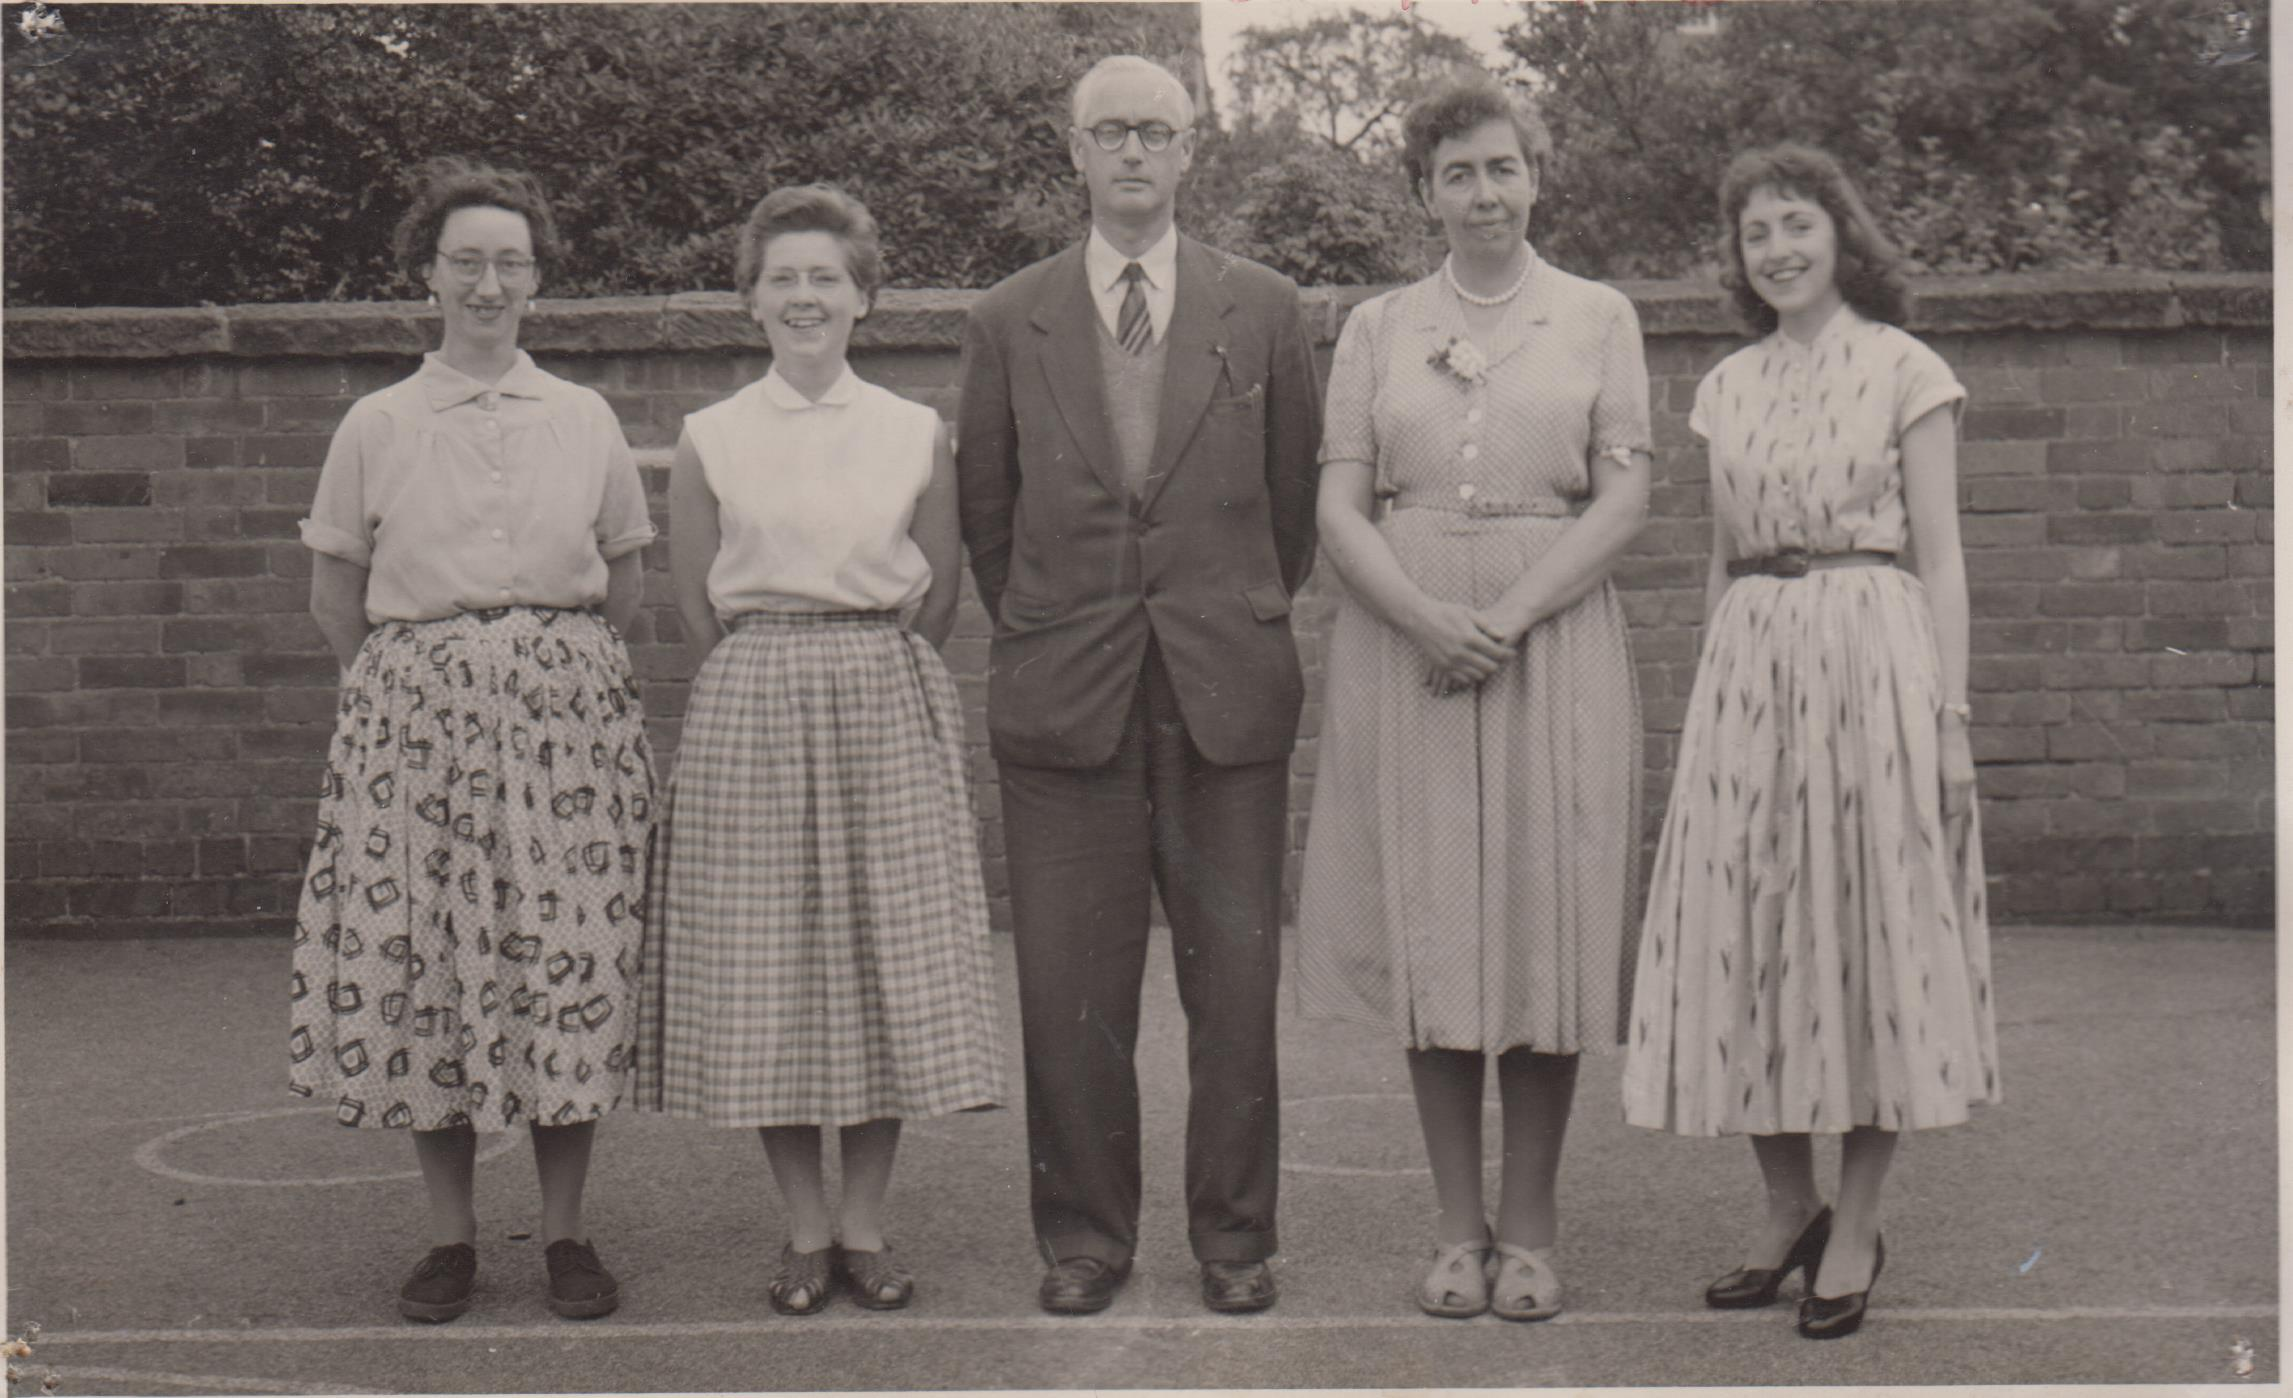 school_teachers_summer_1956_001.jpg